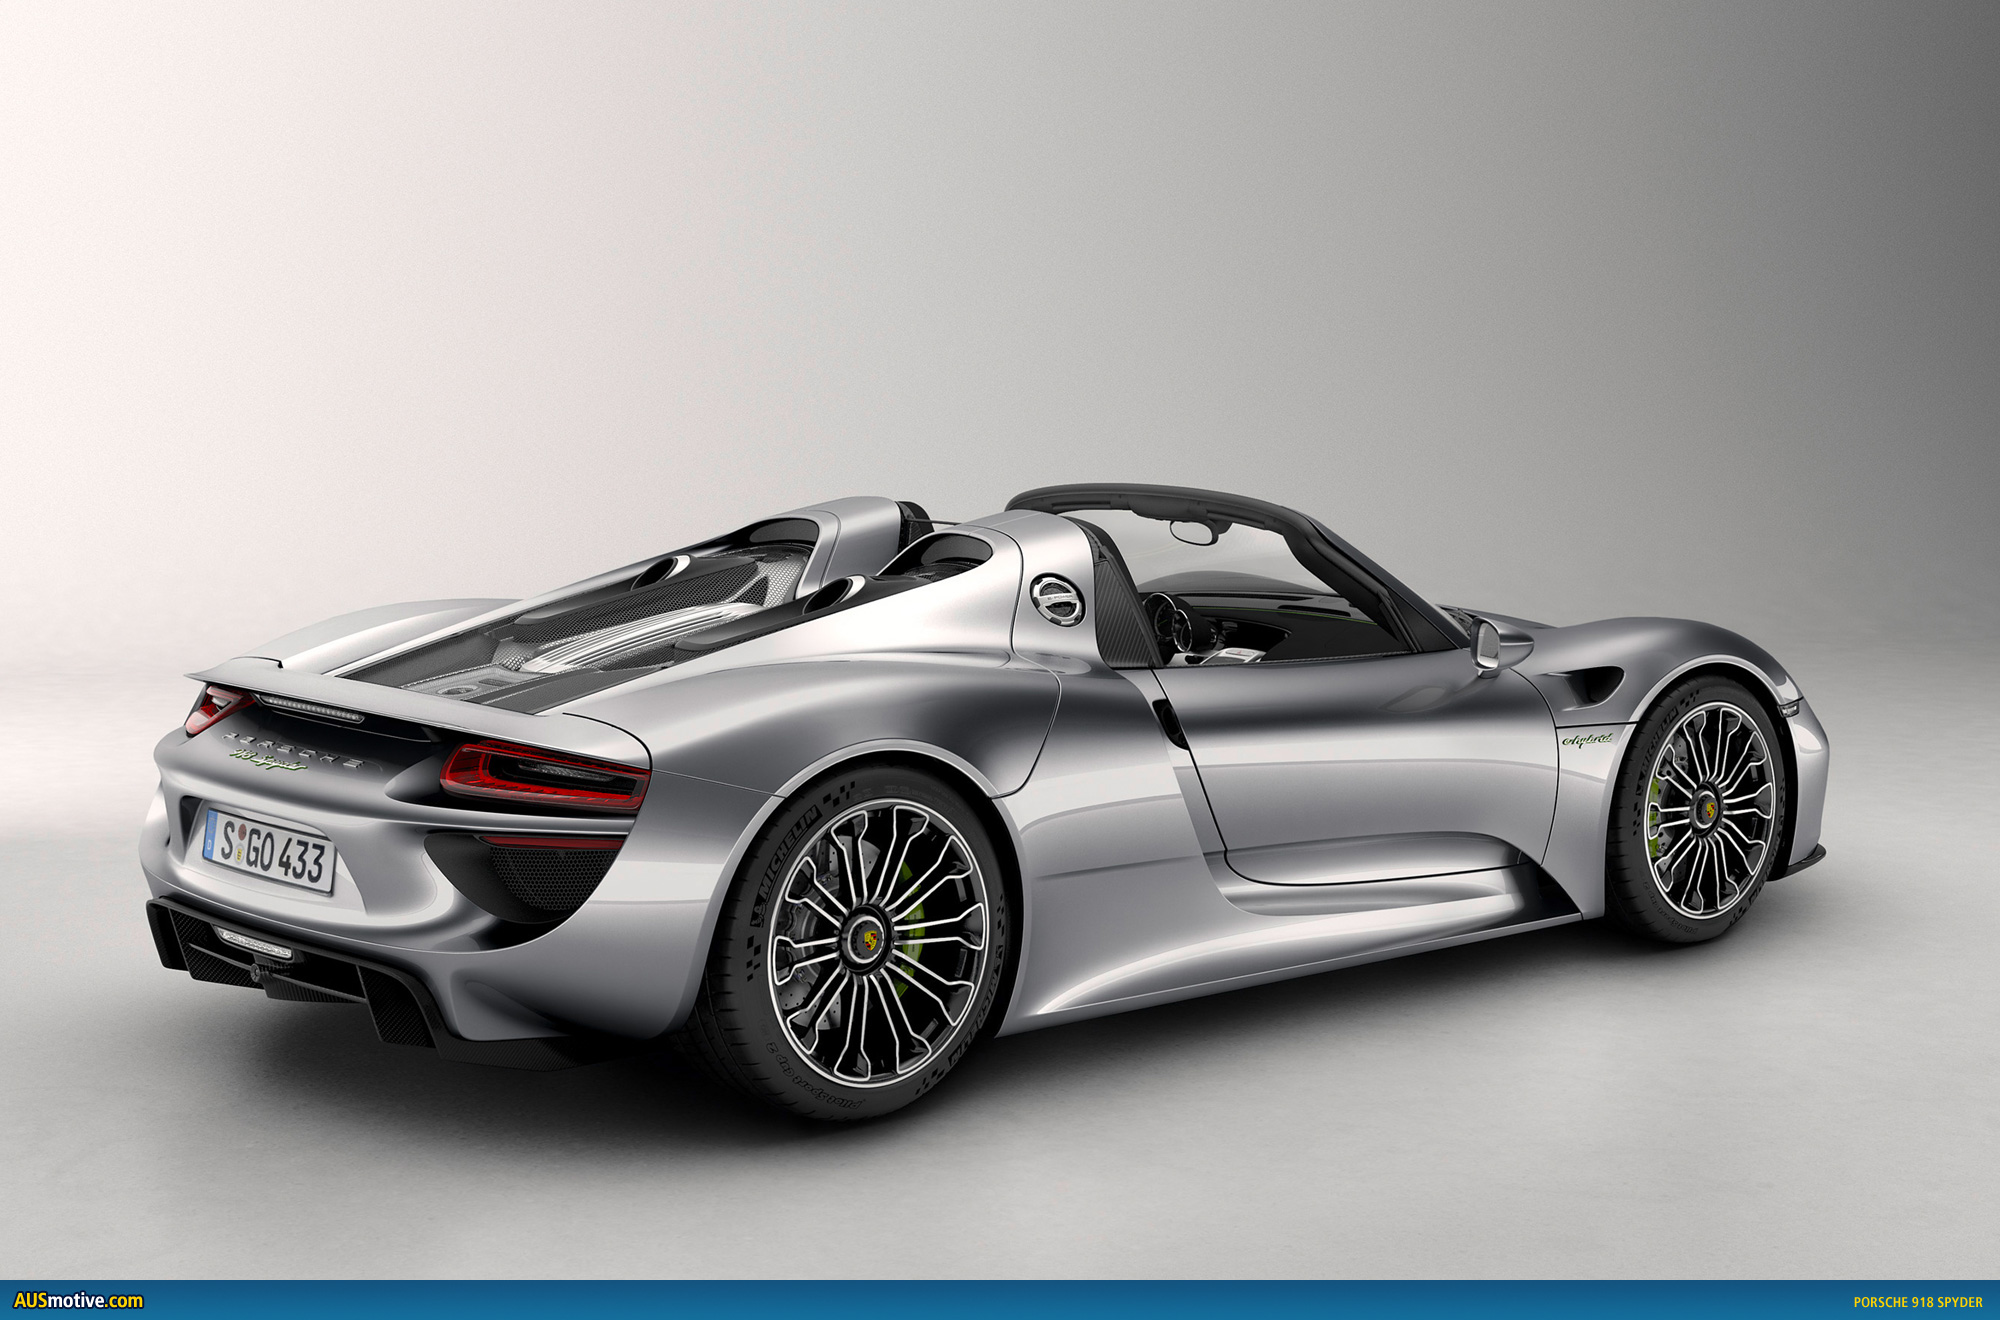 Porsche-918-Spyder-02 Fabulous How Much Does the Porsche 918 Spyder Concept Cost In Real Racing 3 Cars Trend